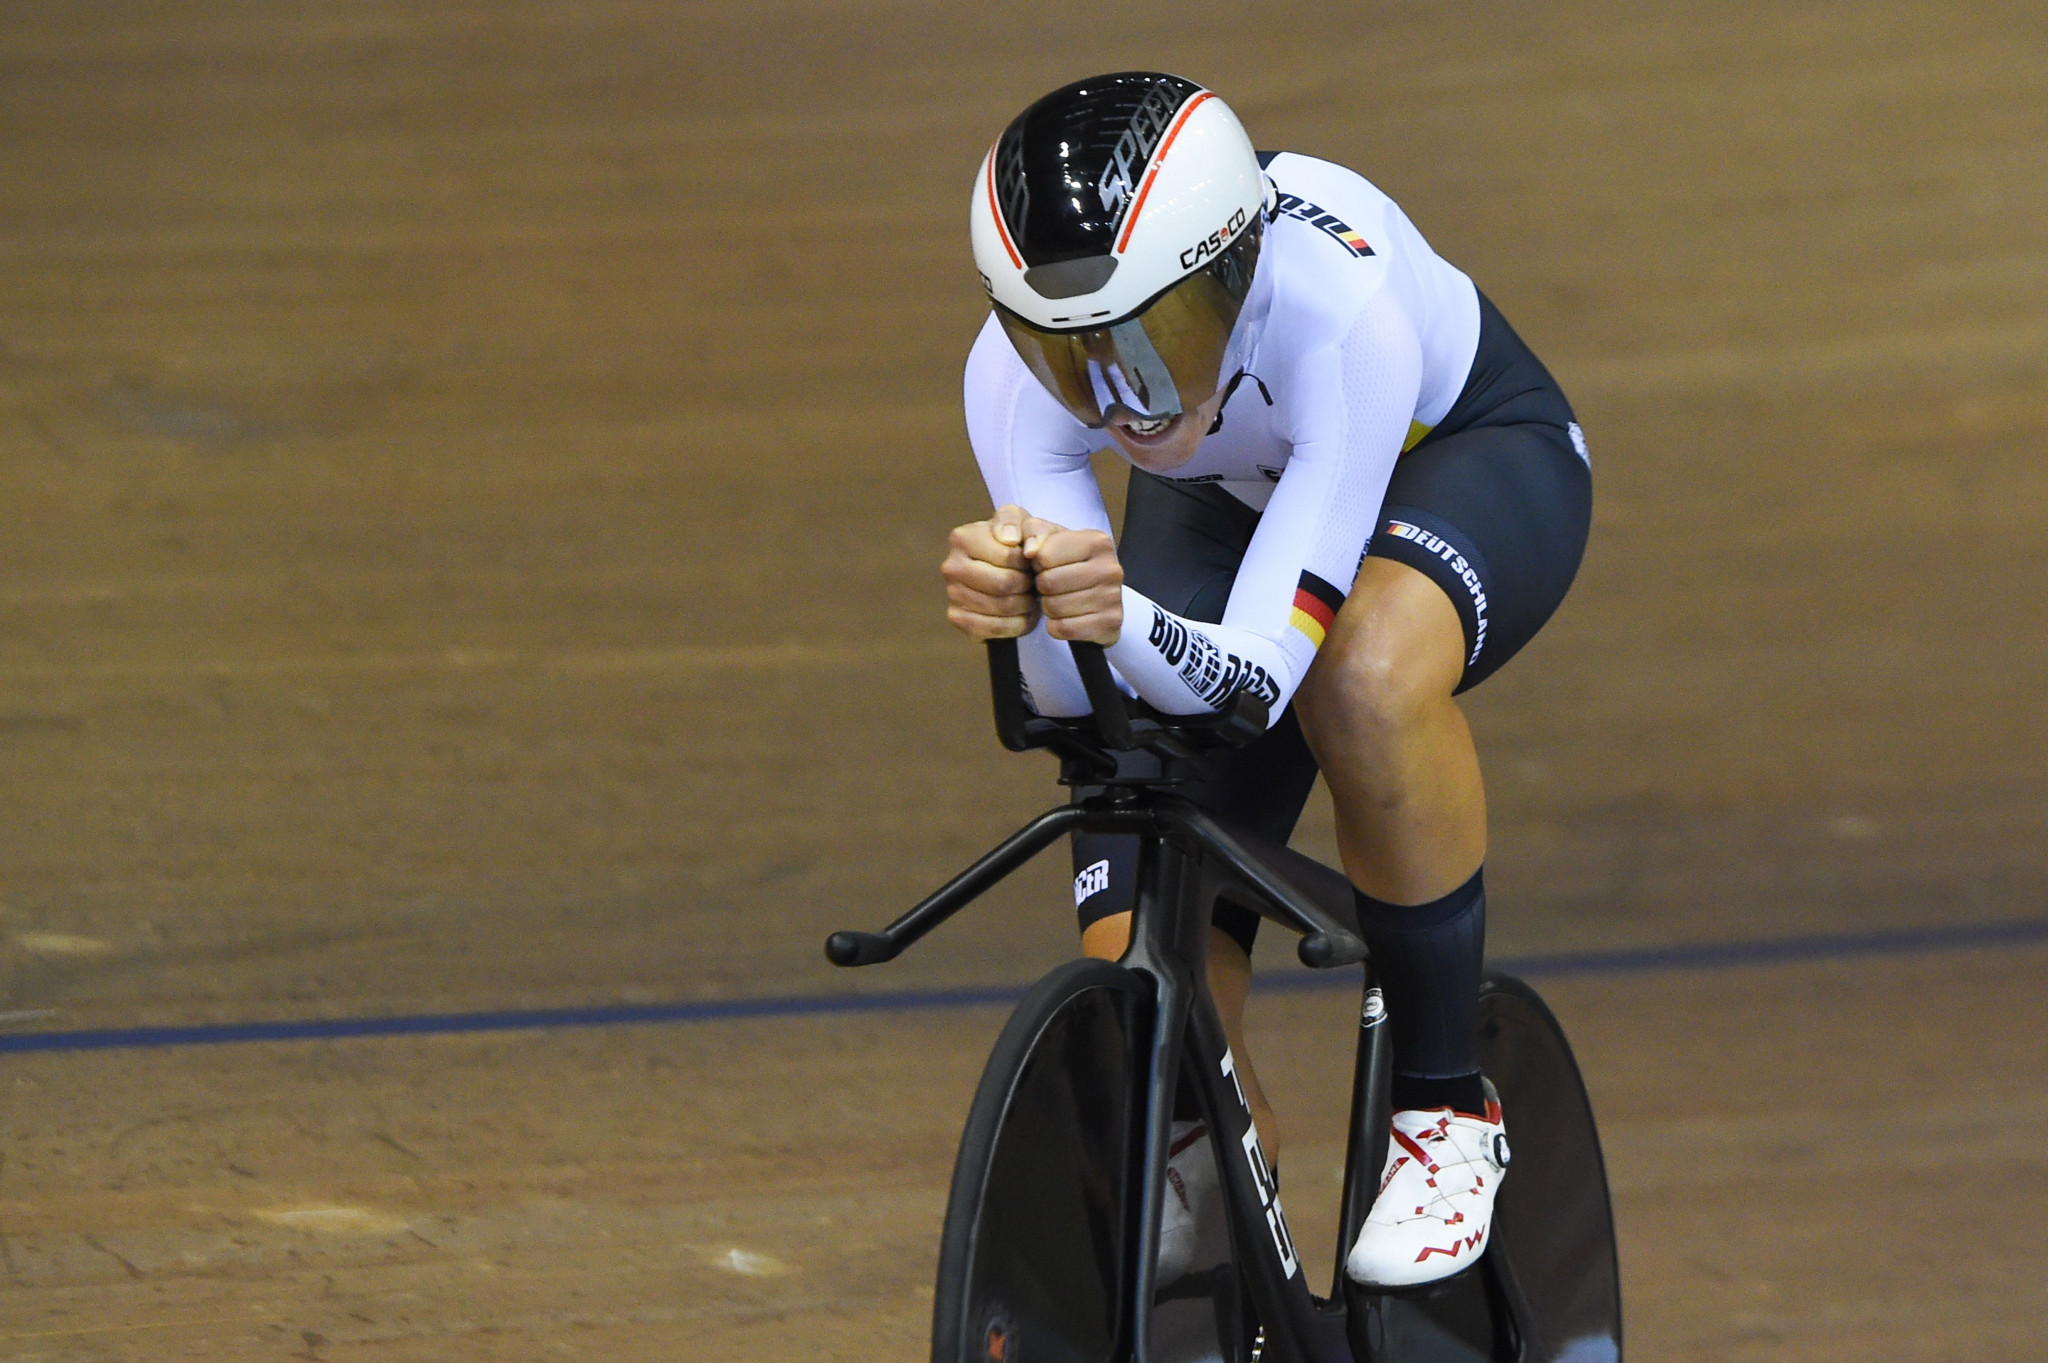 Germany's Lisa Brennauer rode to gold in the women's individual pursuit ©Getty Images